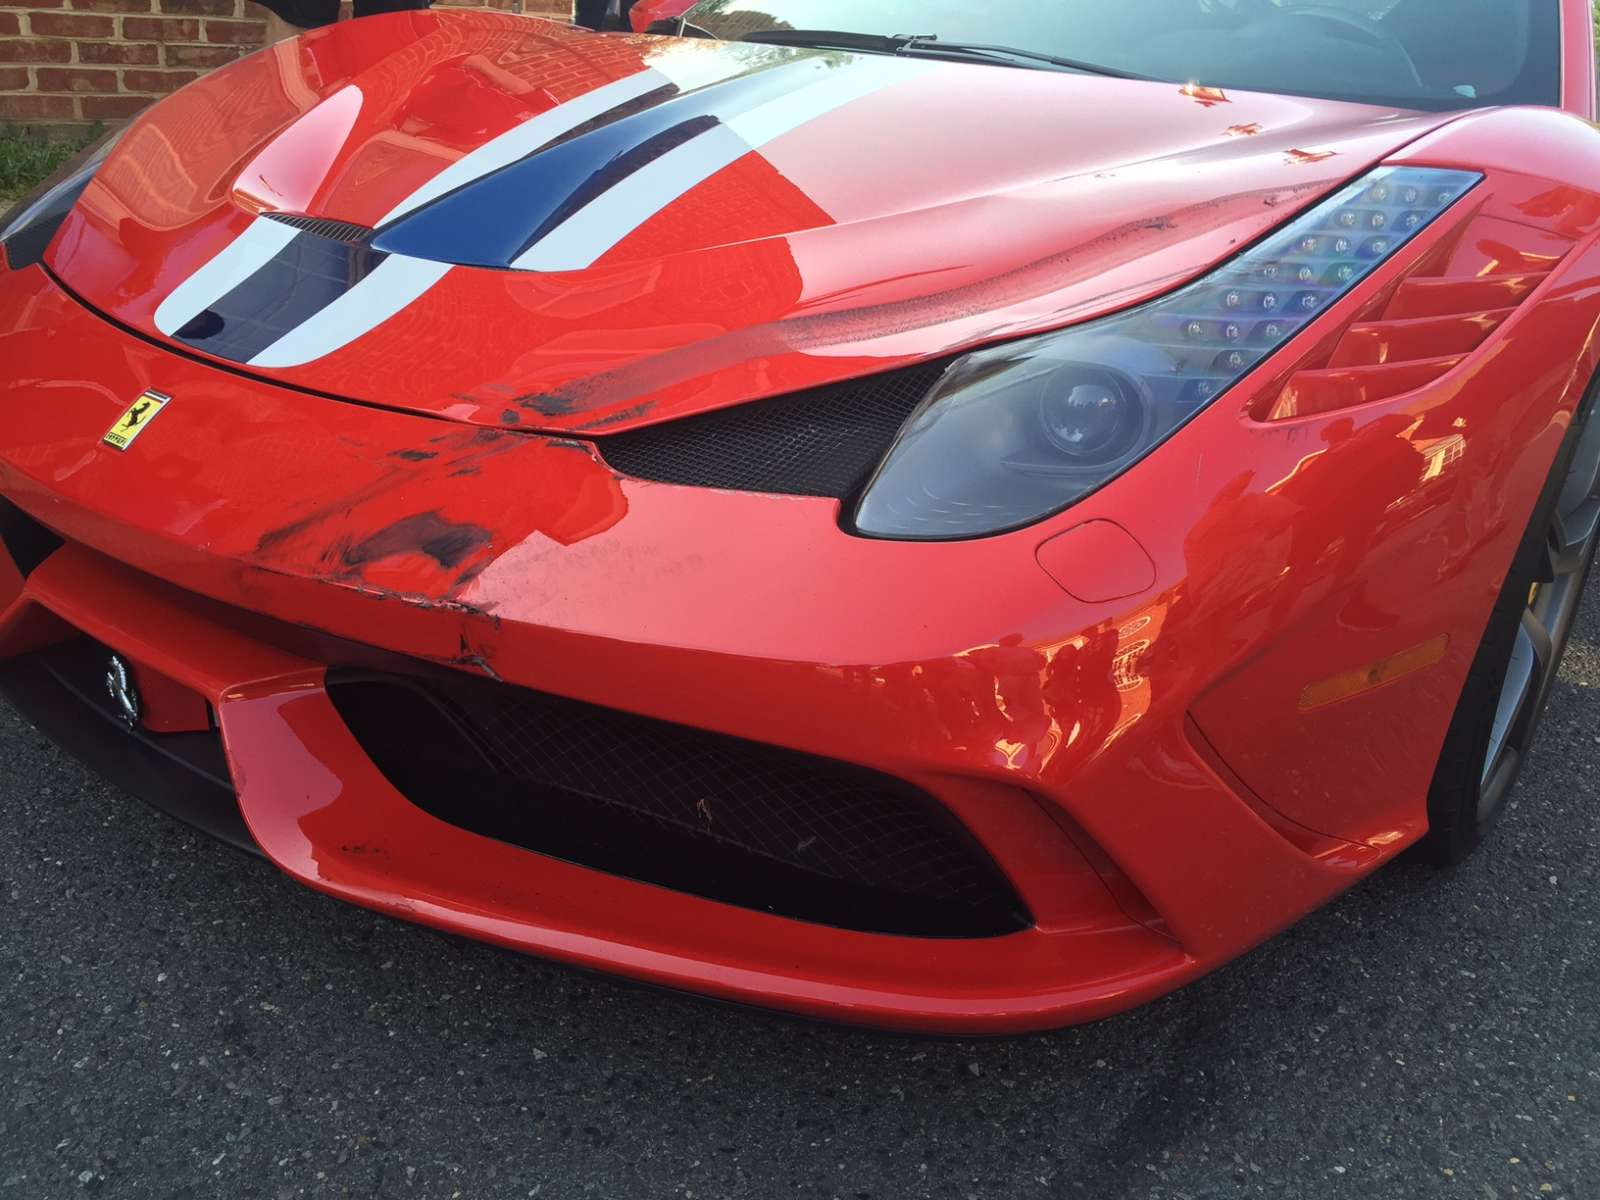 Driver Rams into Ferrari - Virginia - 2